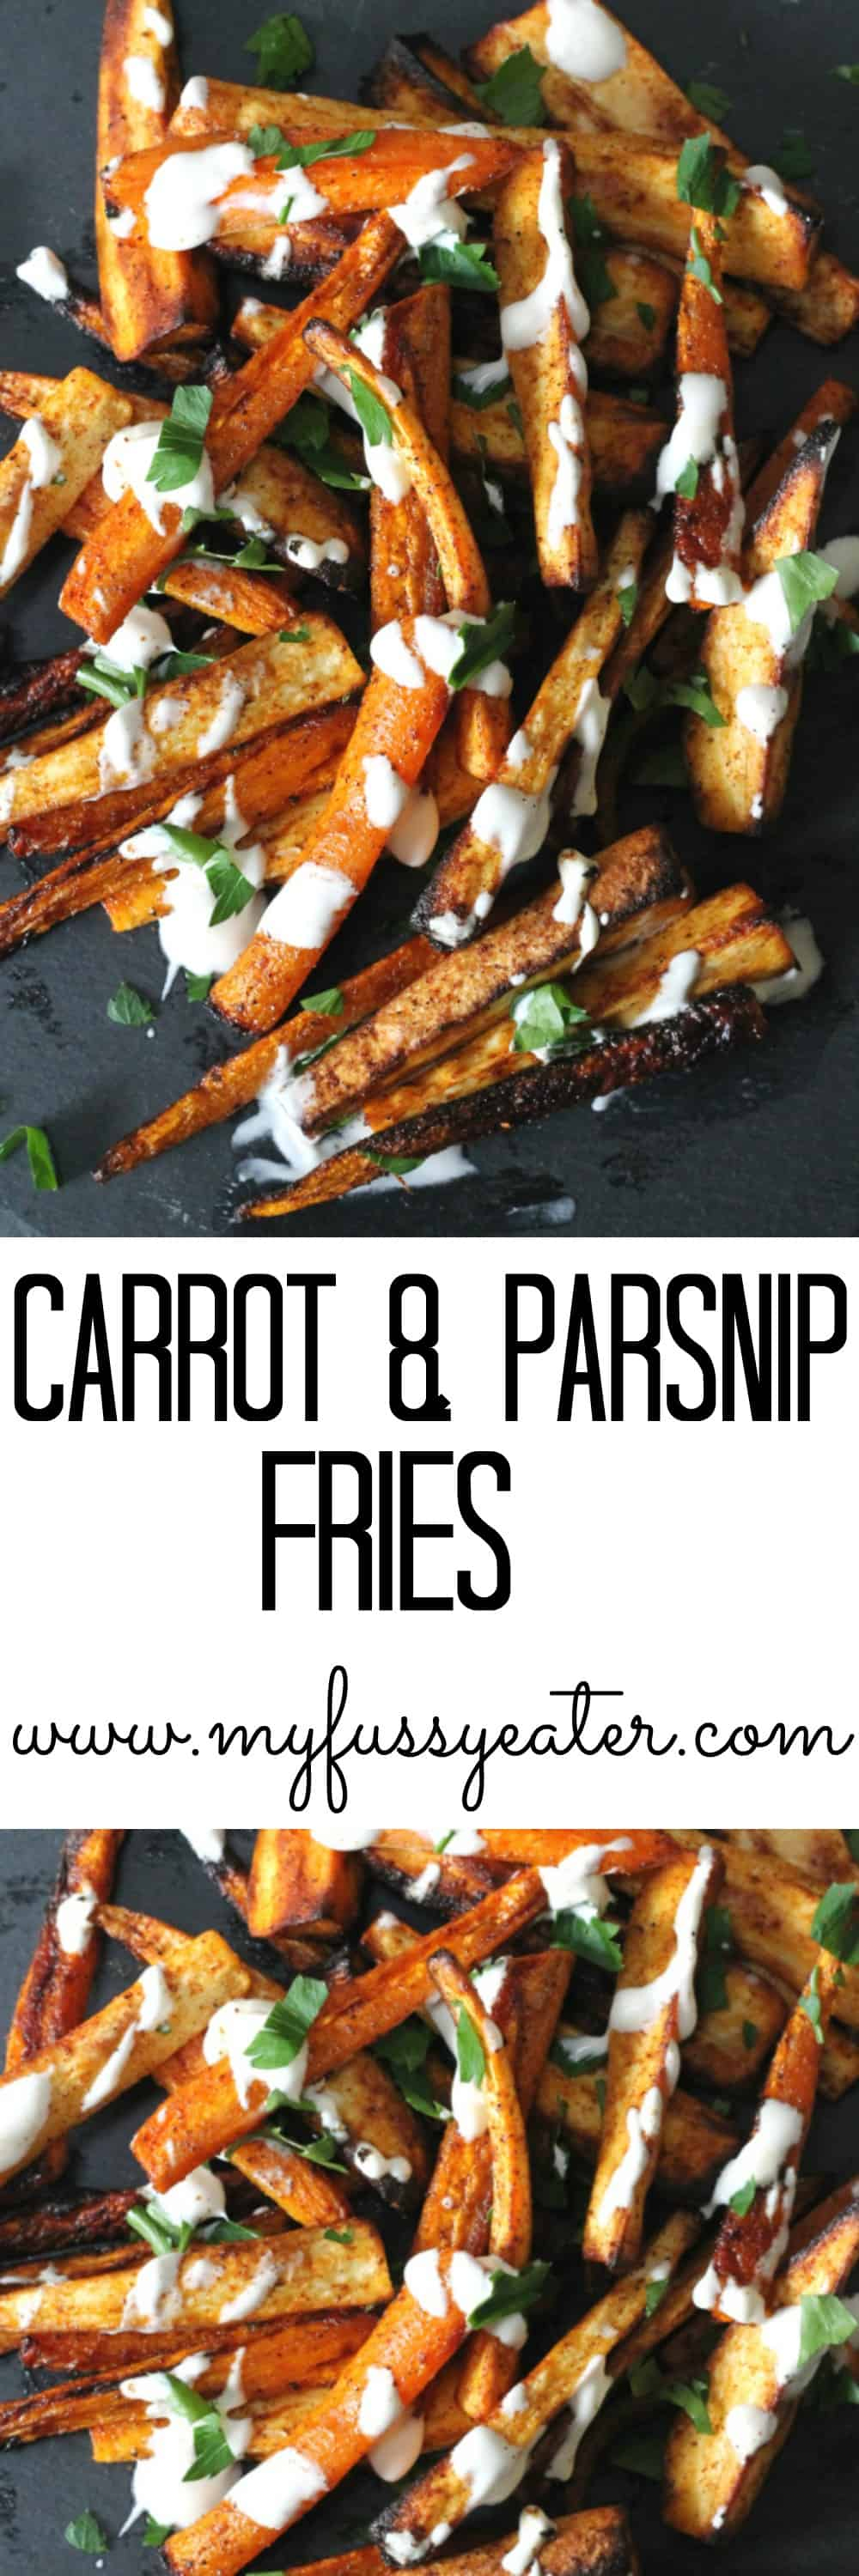 carrot and parsnip fries pinterest pin